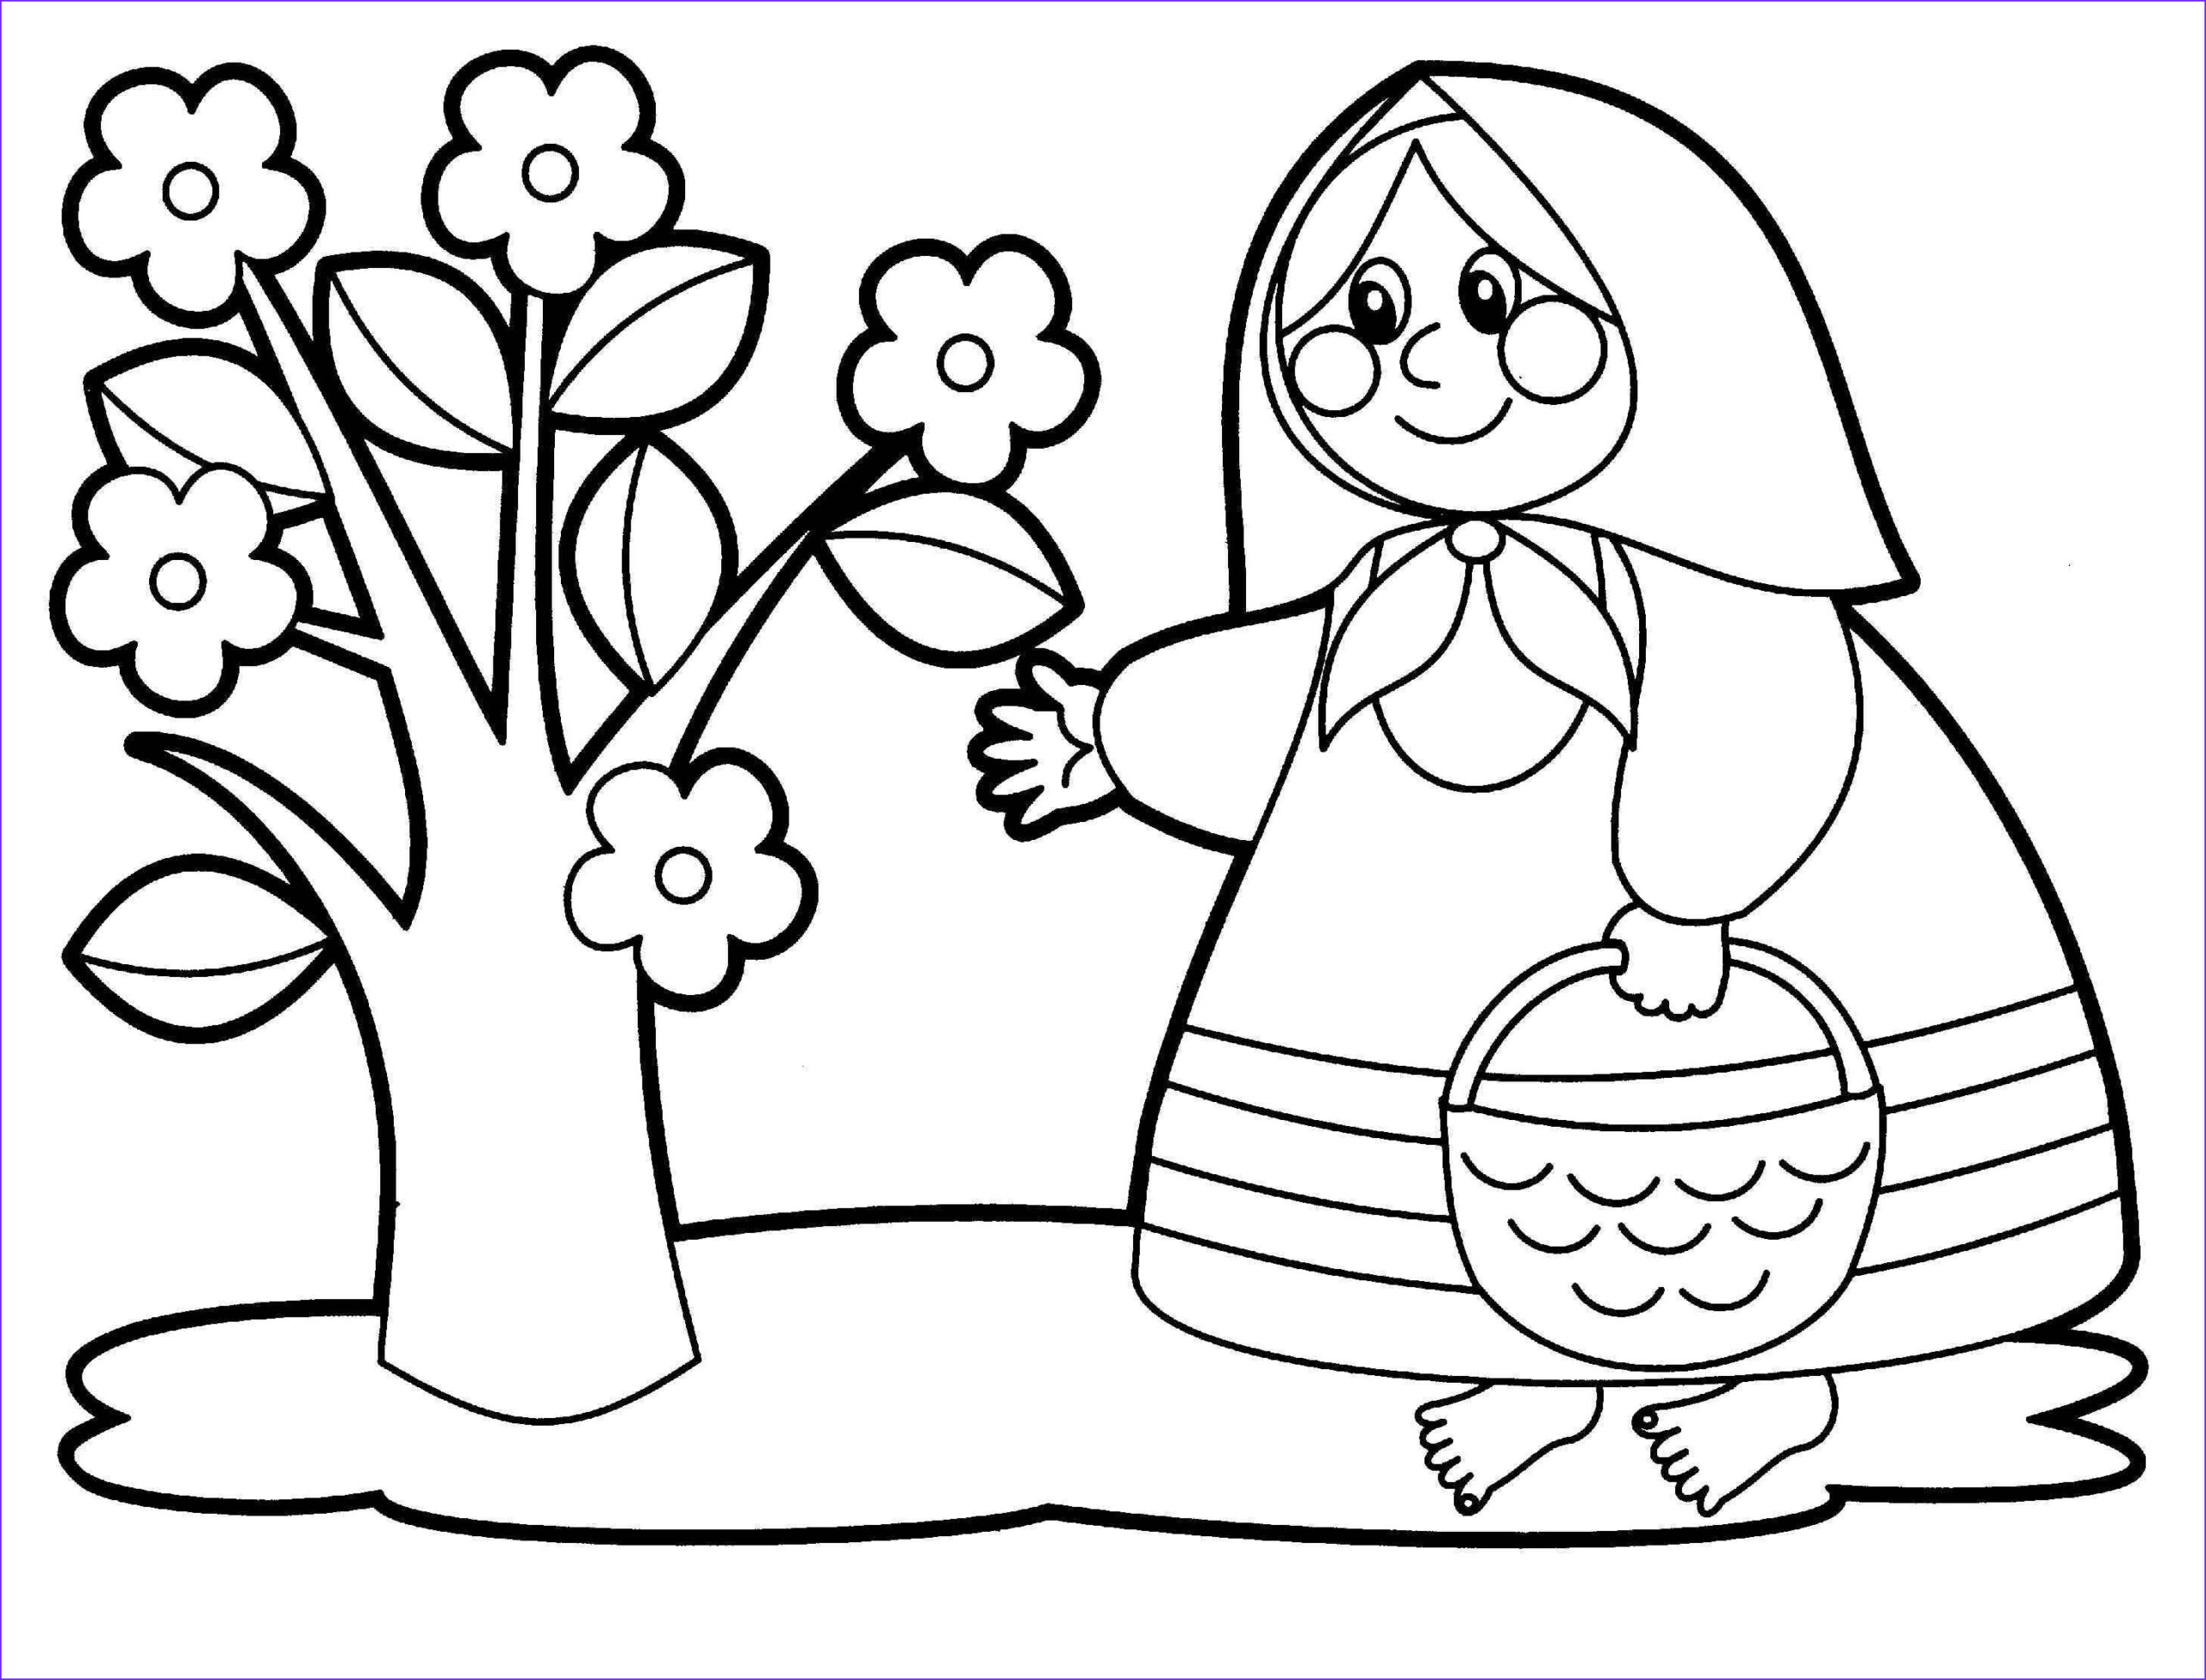 Free Printable Coloring Pages For Kids Cool Gallery Coloring Pages For Children Of 4 5 Years To And